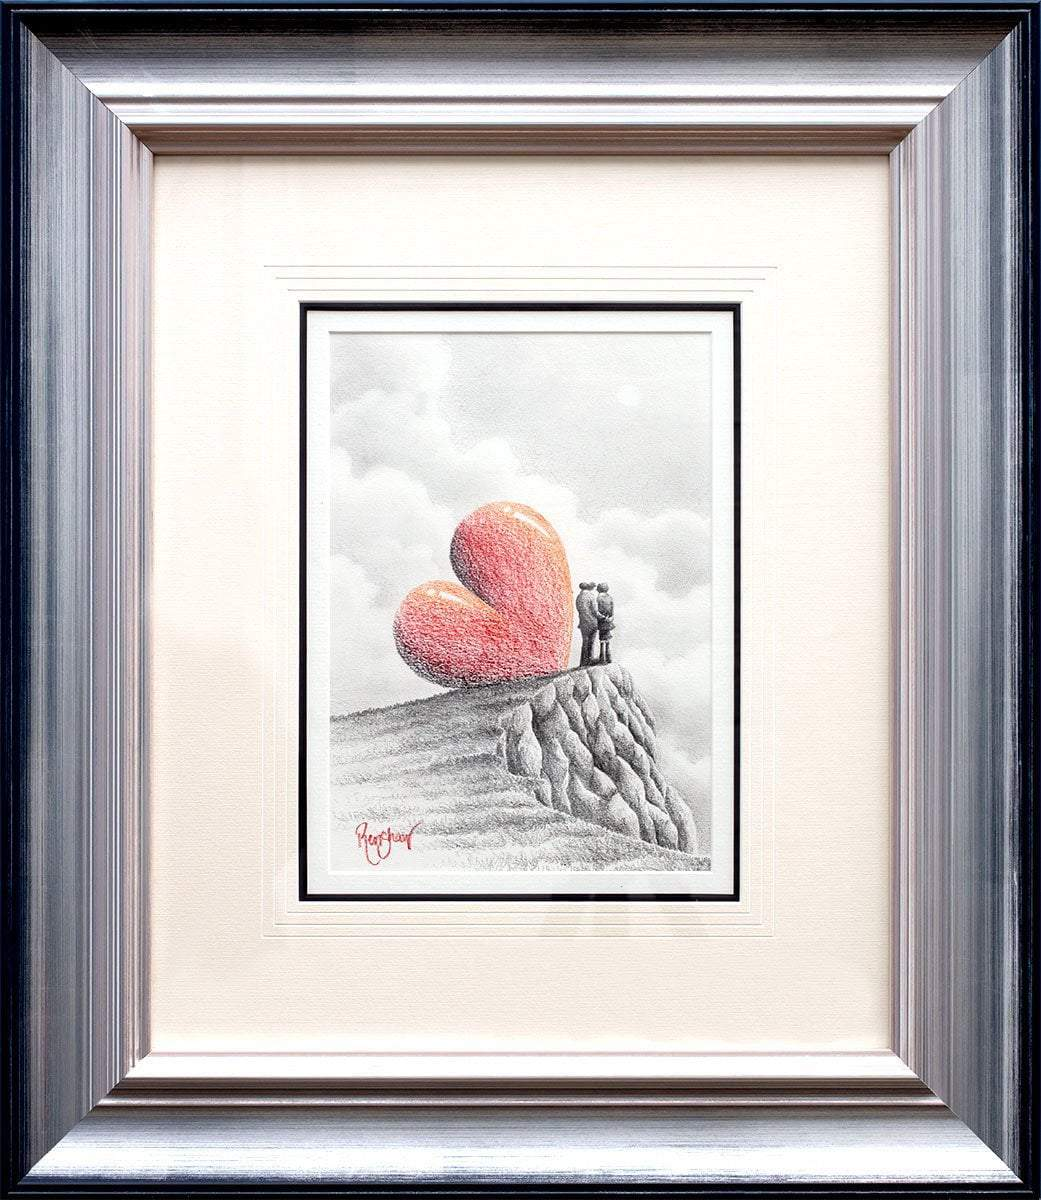 Heads In The Clouds - Original Sketch David Renshaw Framed